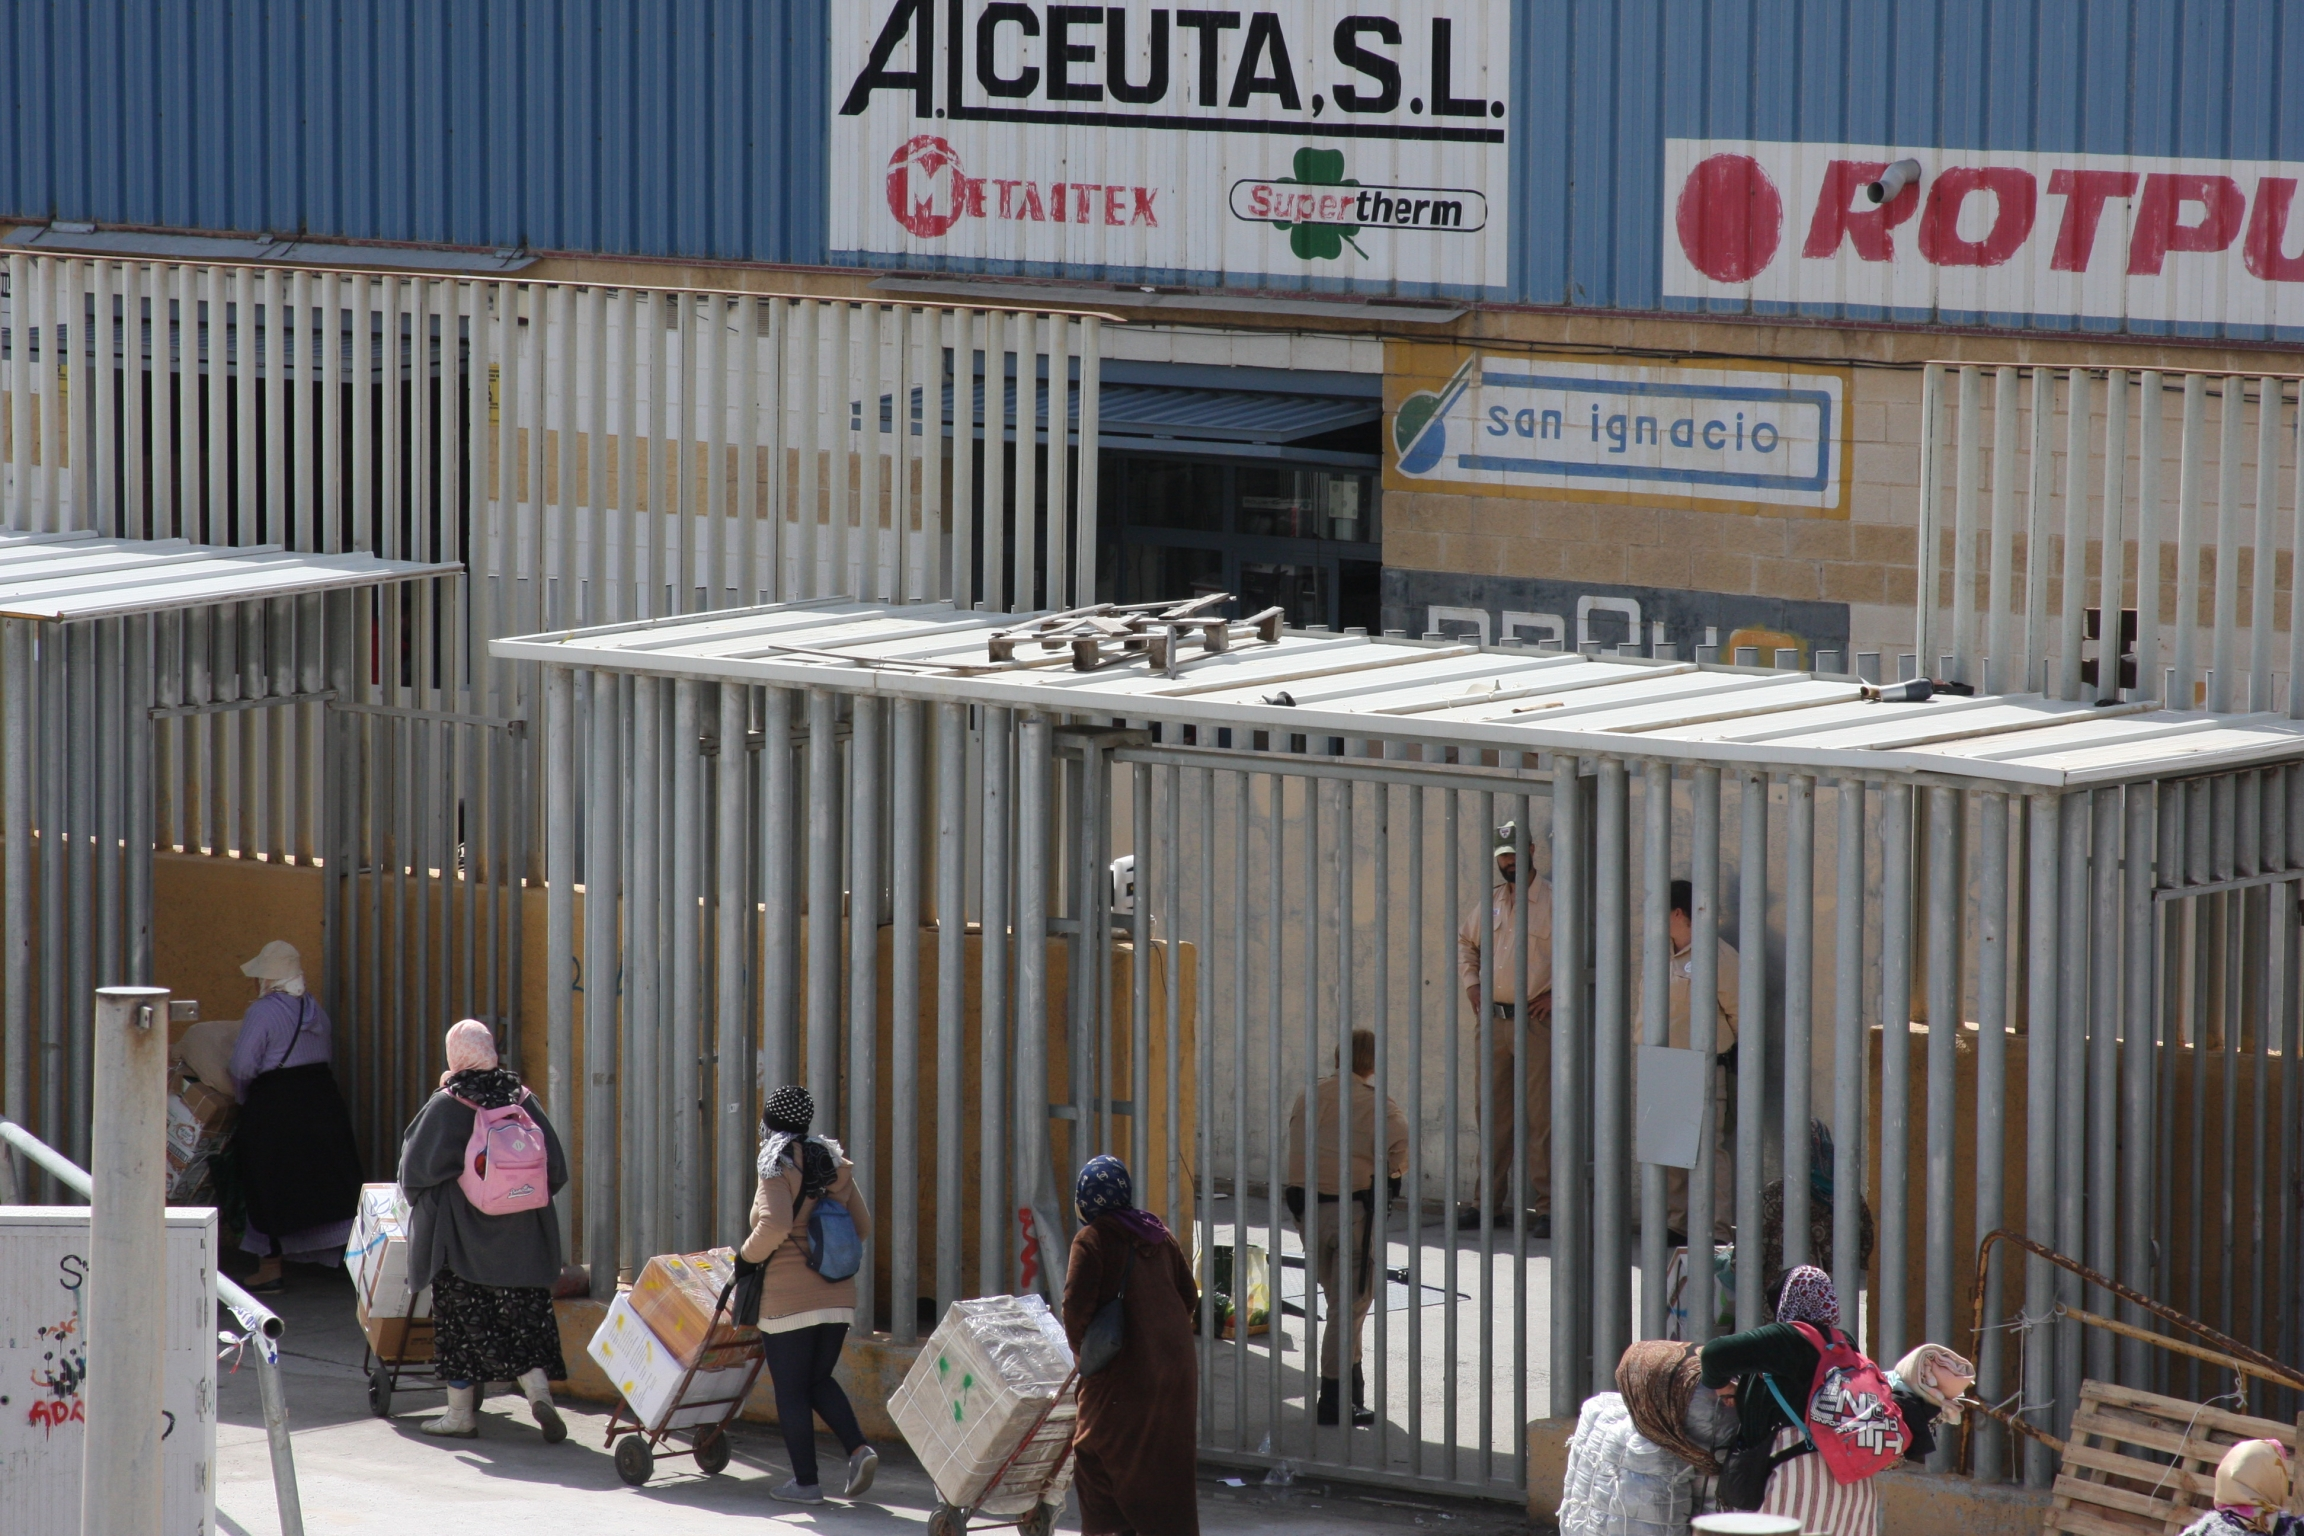 women line up to enter metal gates into spain